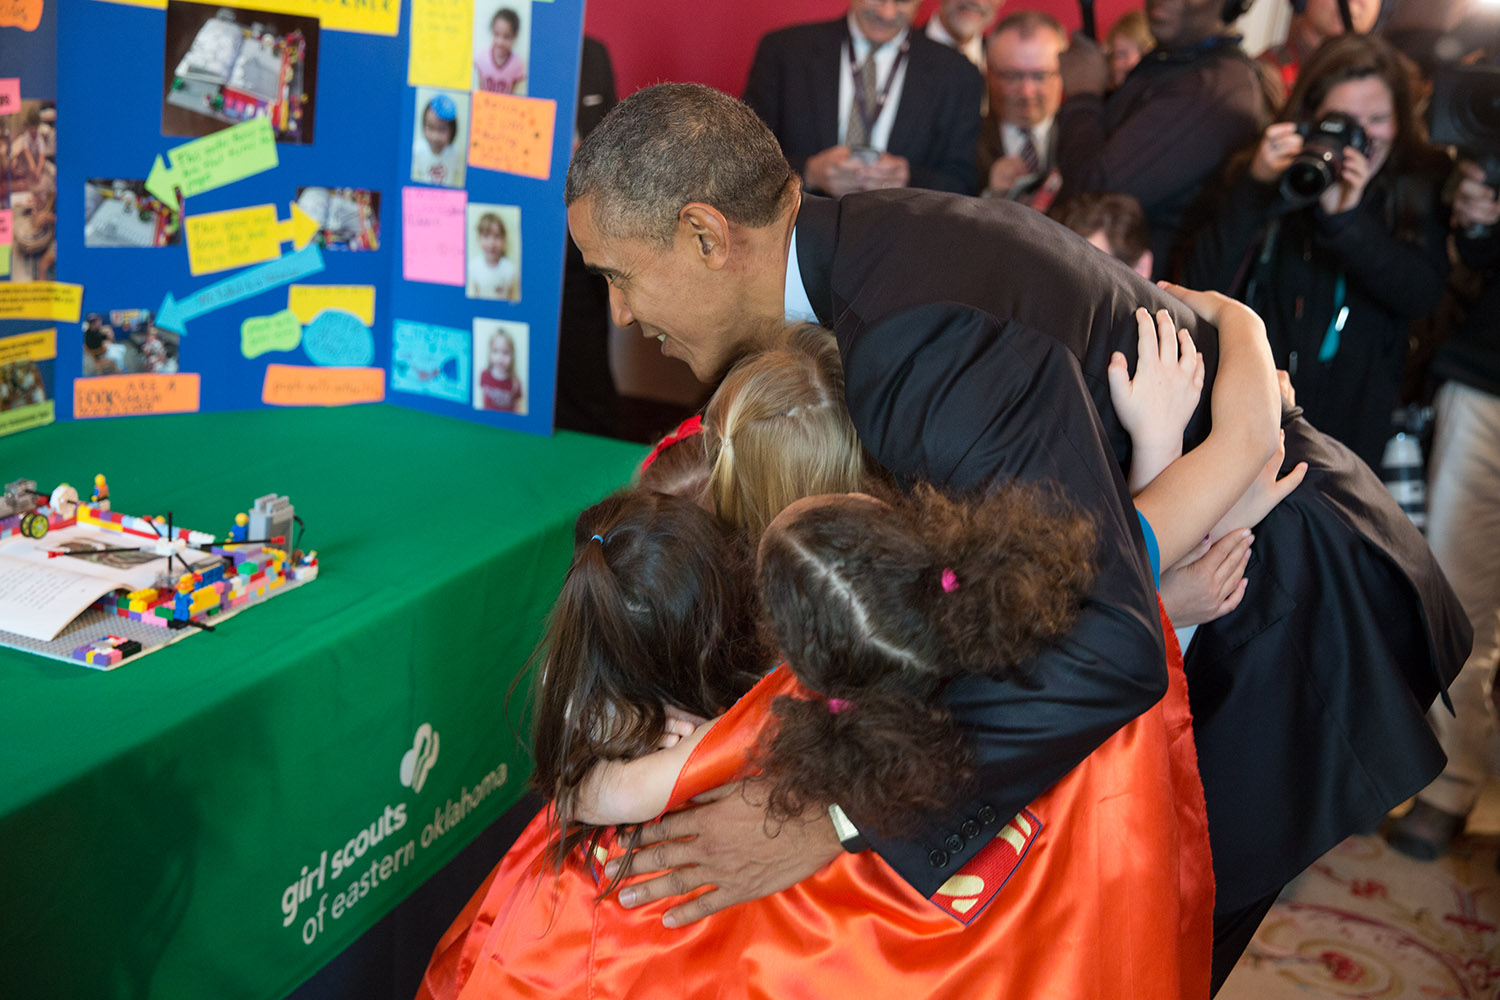 President Obama hugs a group of young girl scouts who presented their project at the 2015 White House Science Fair